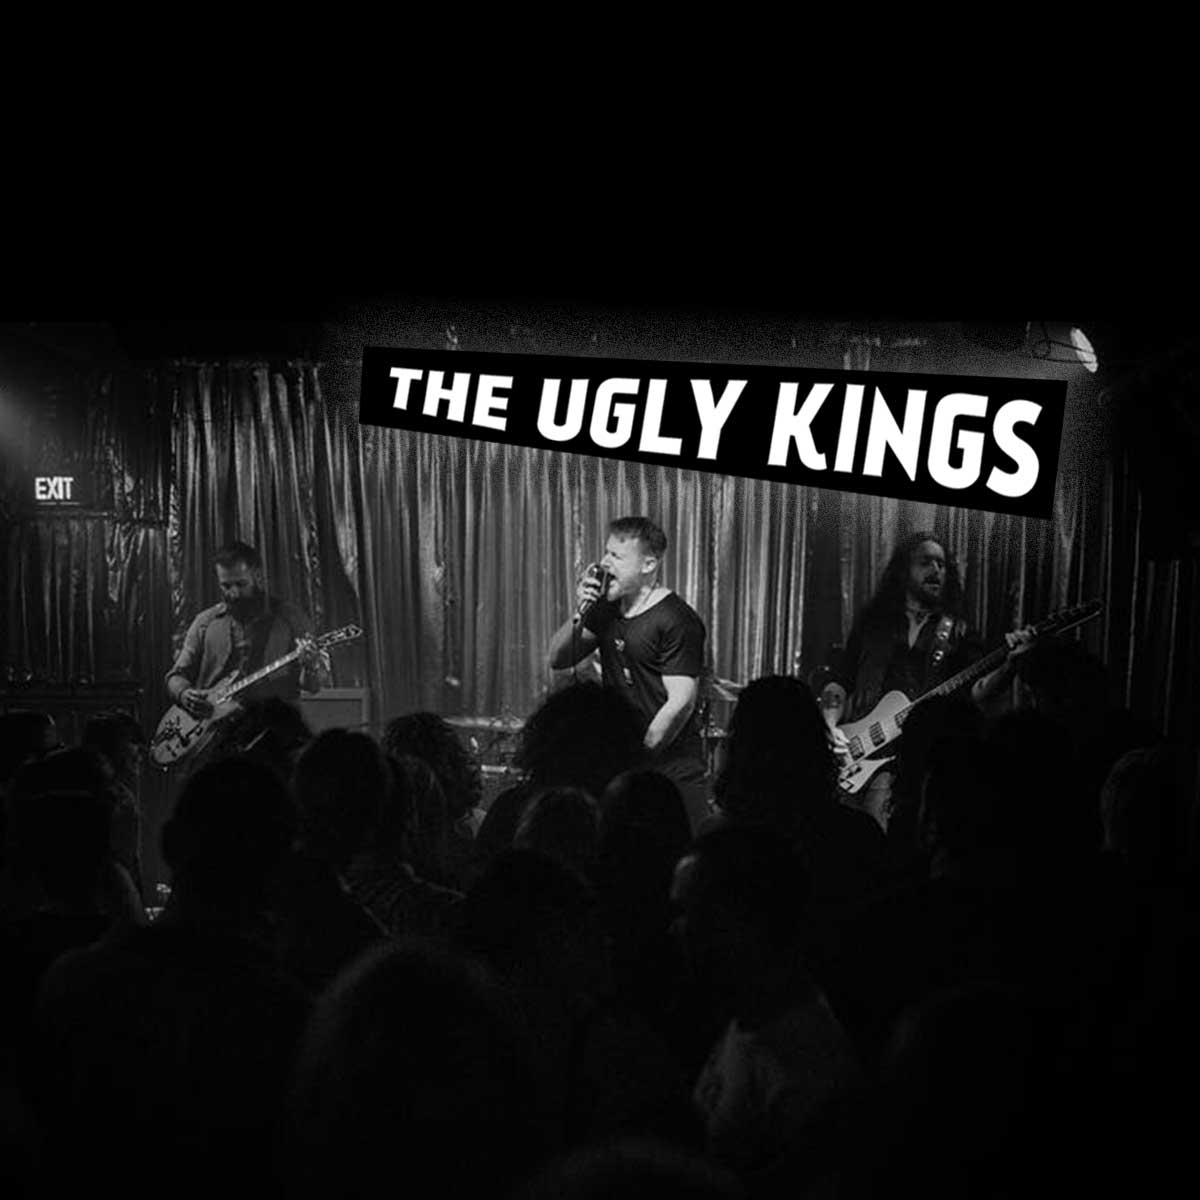 'Of Sins': Melbourne's The Ugly Kings are Kevlar-coated and Ready for Incoming